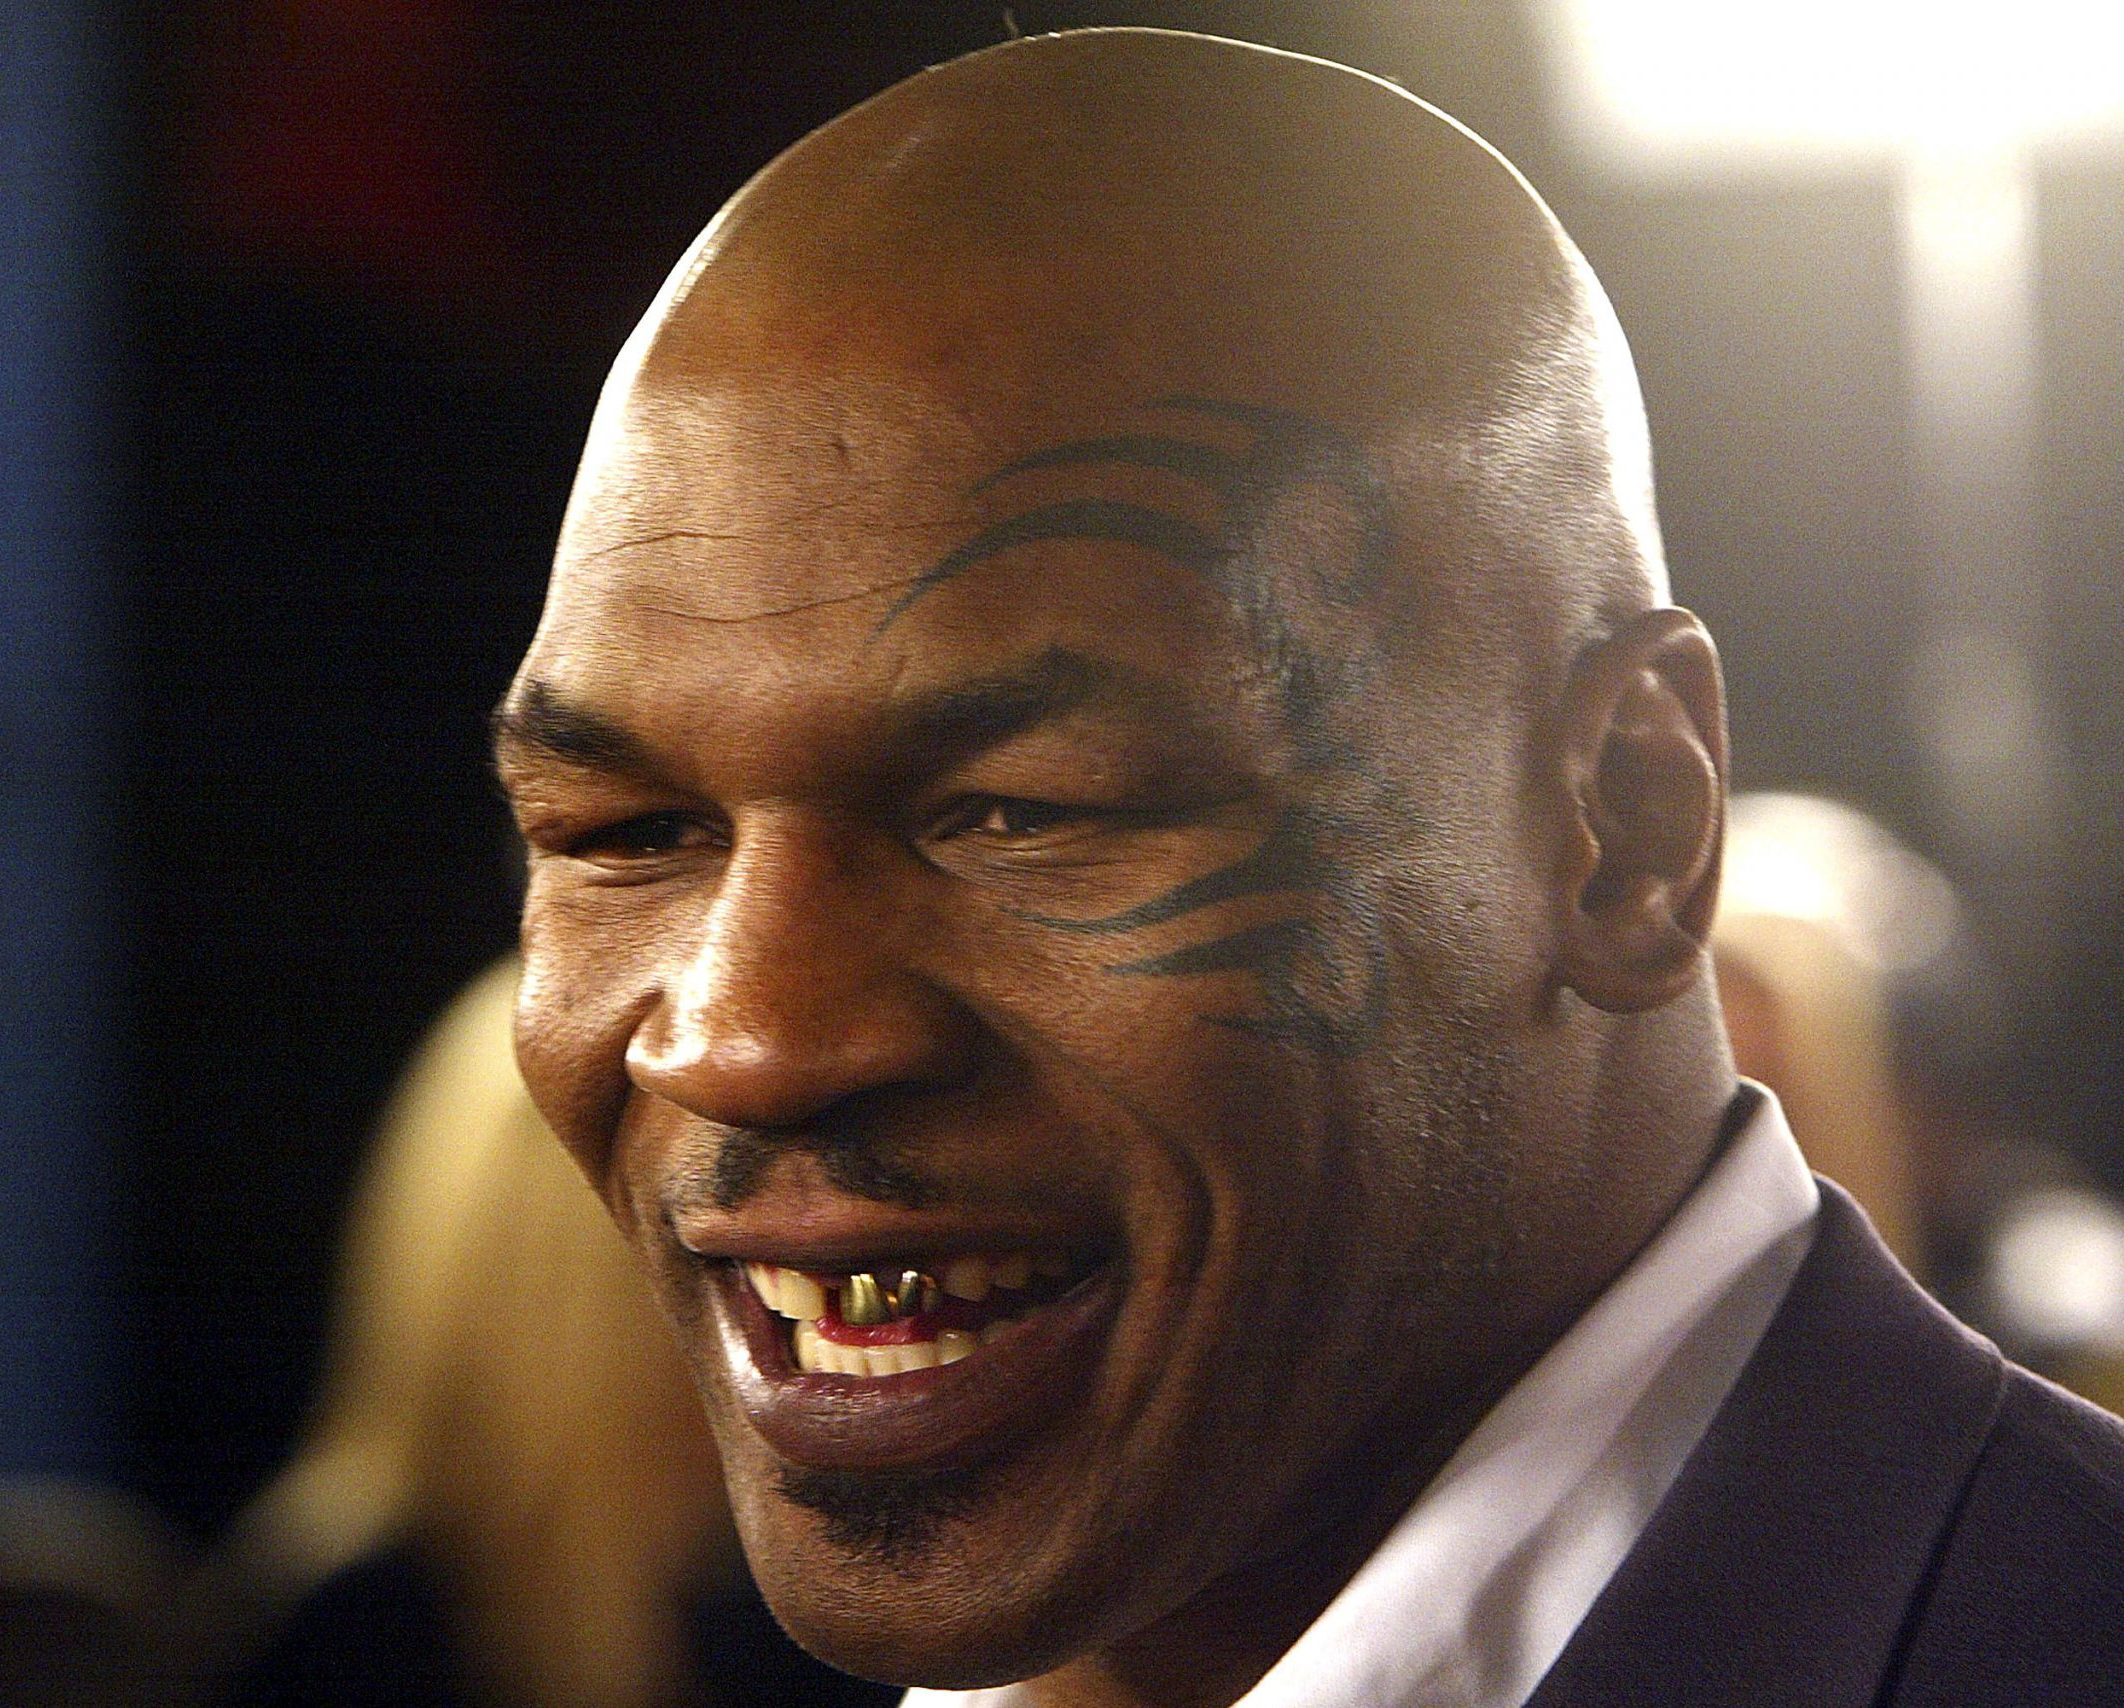 gettyimages 2973177 scaled e1625654764645 25 Things You Never Knew About Iron Mike Tyson